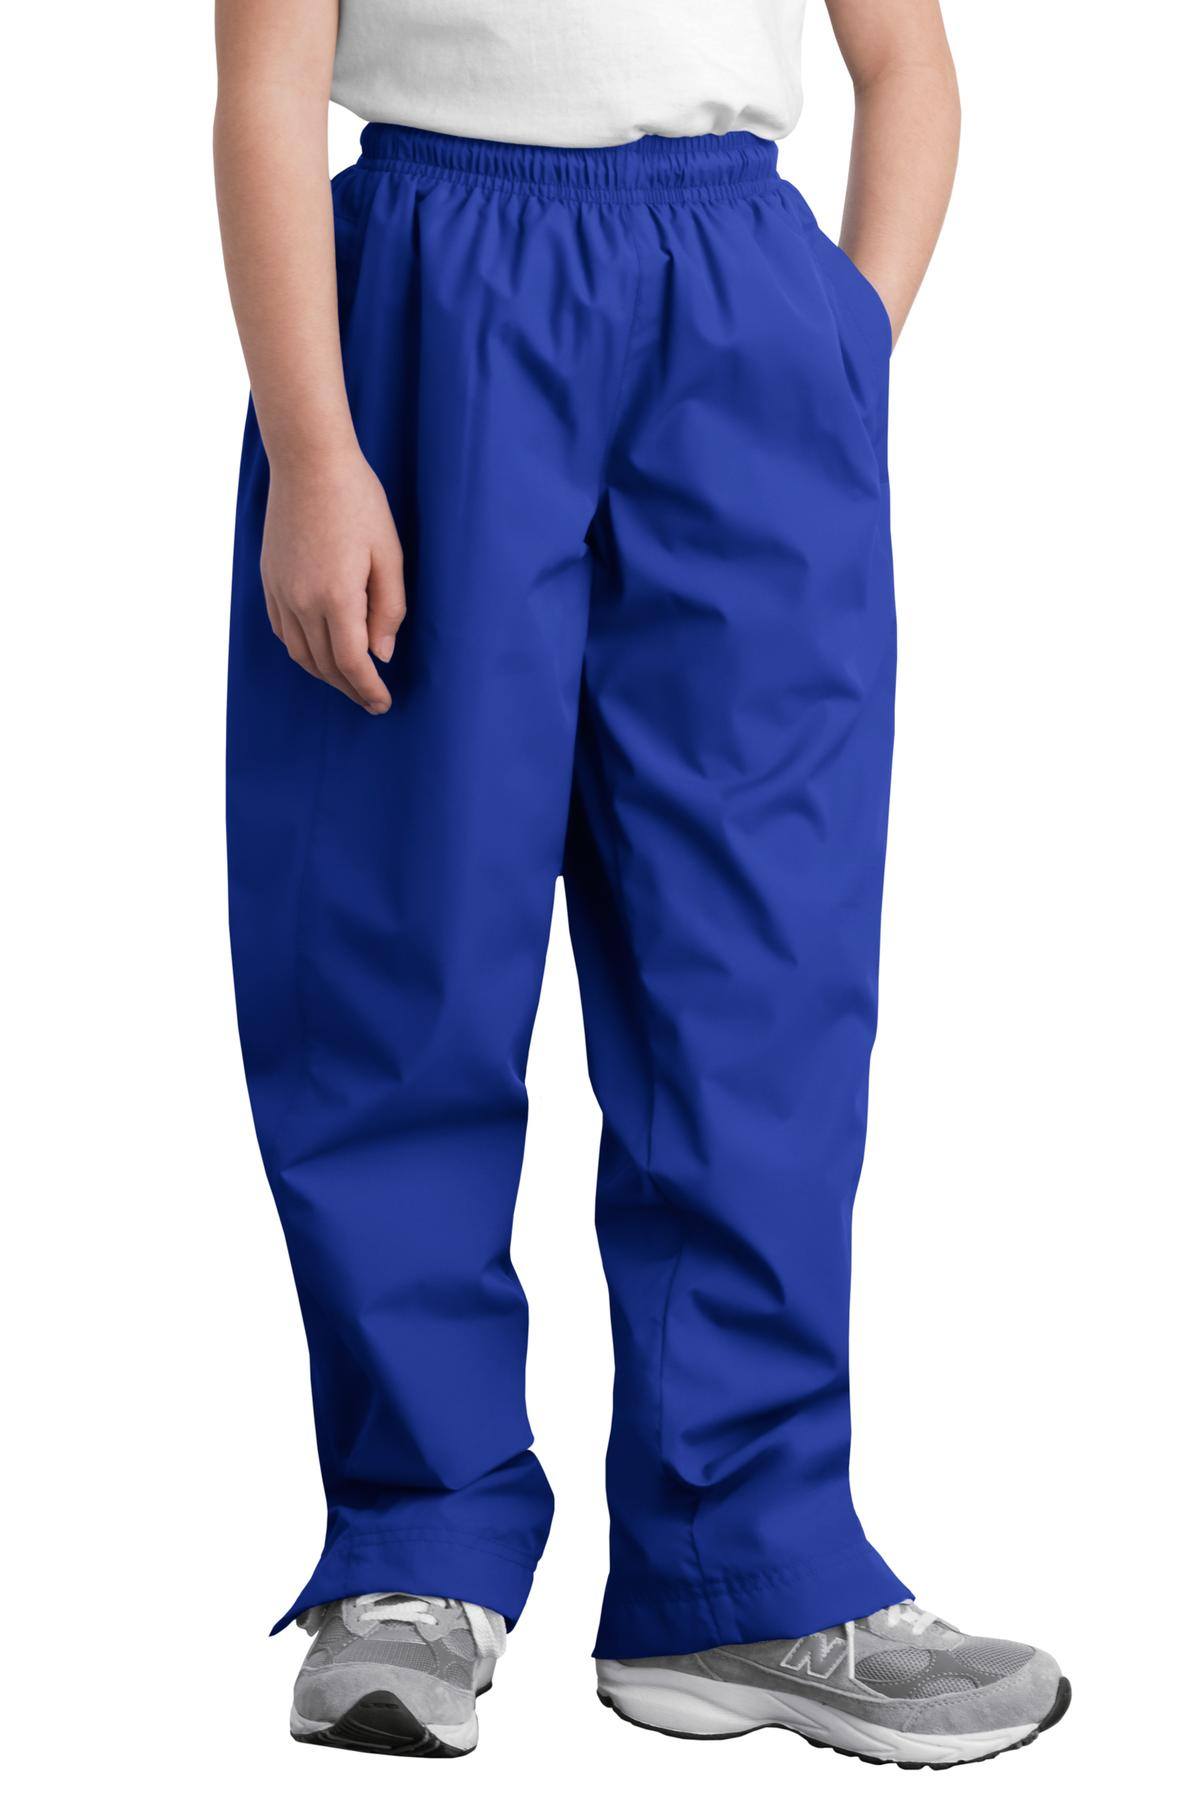 Sport-Tek ®  Youth Wind Pant. YPST74 - True Royal